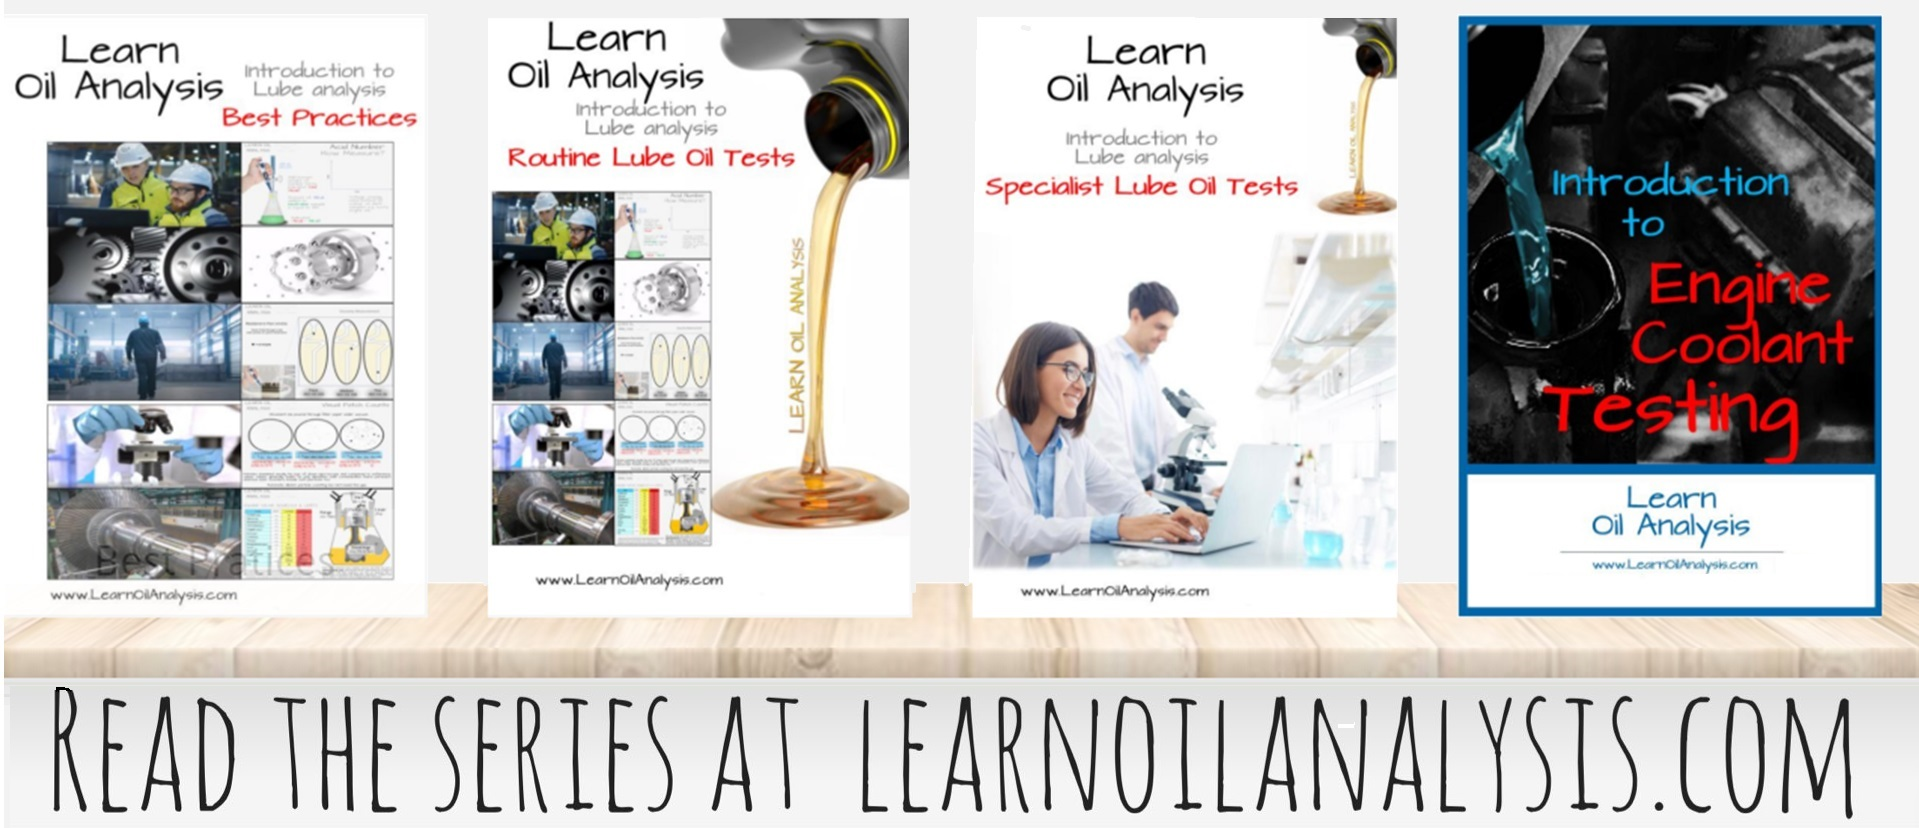 learn oil analysis download book picture Learn used oil analysis sample testing, lubrication reliability maintenance, predictive lab diagnostics to reduce costs & boost profits.